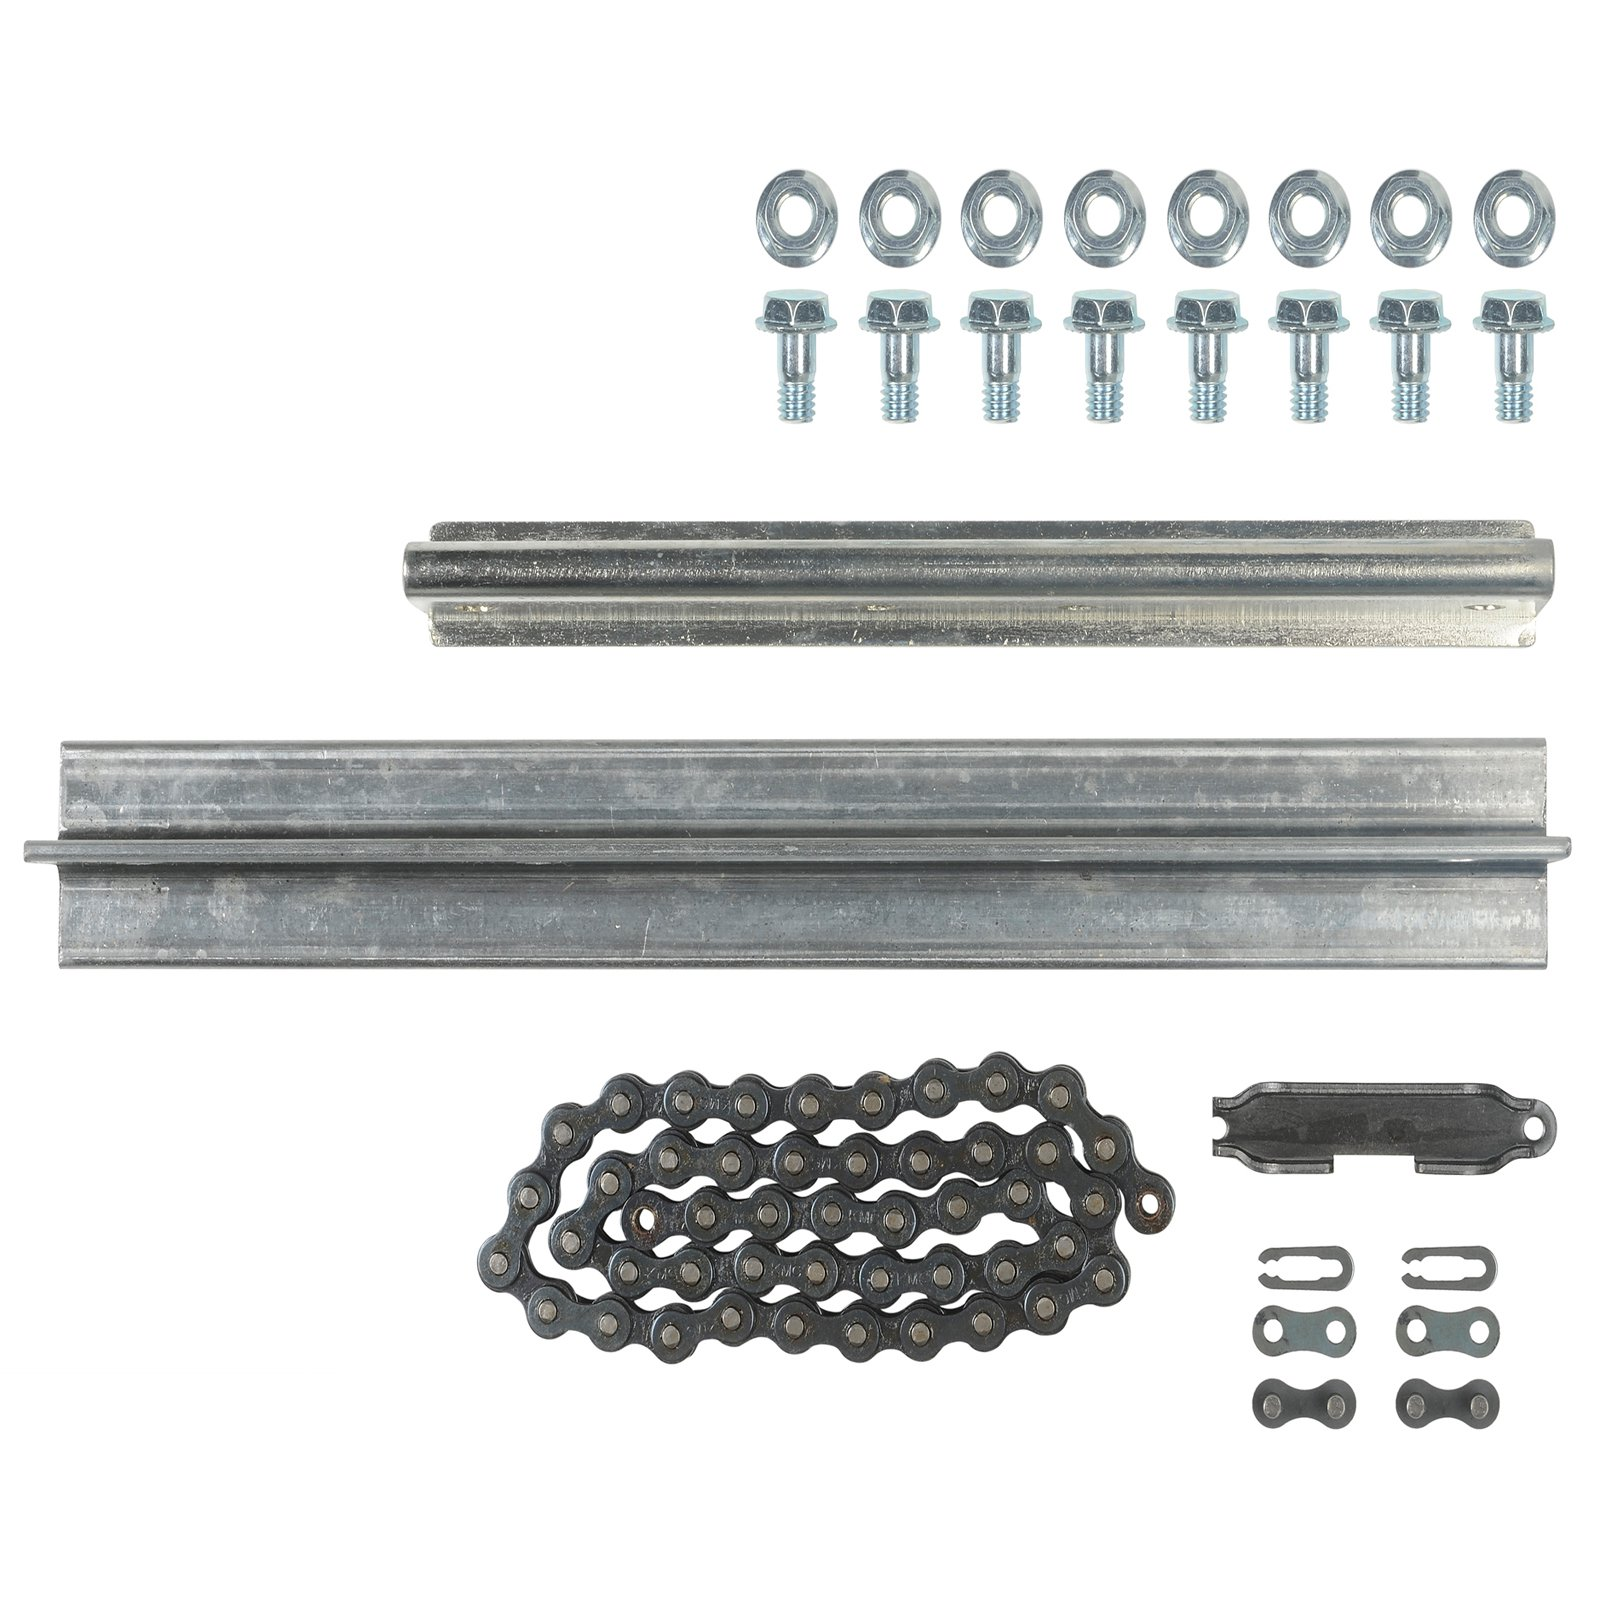 Genie 37648r Chainlift Extension Kit